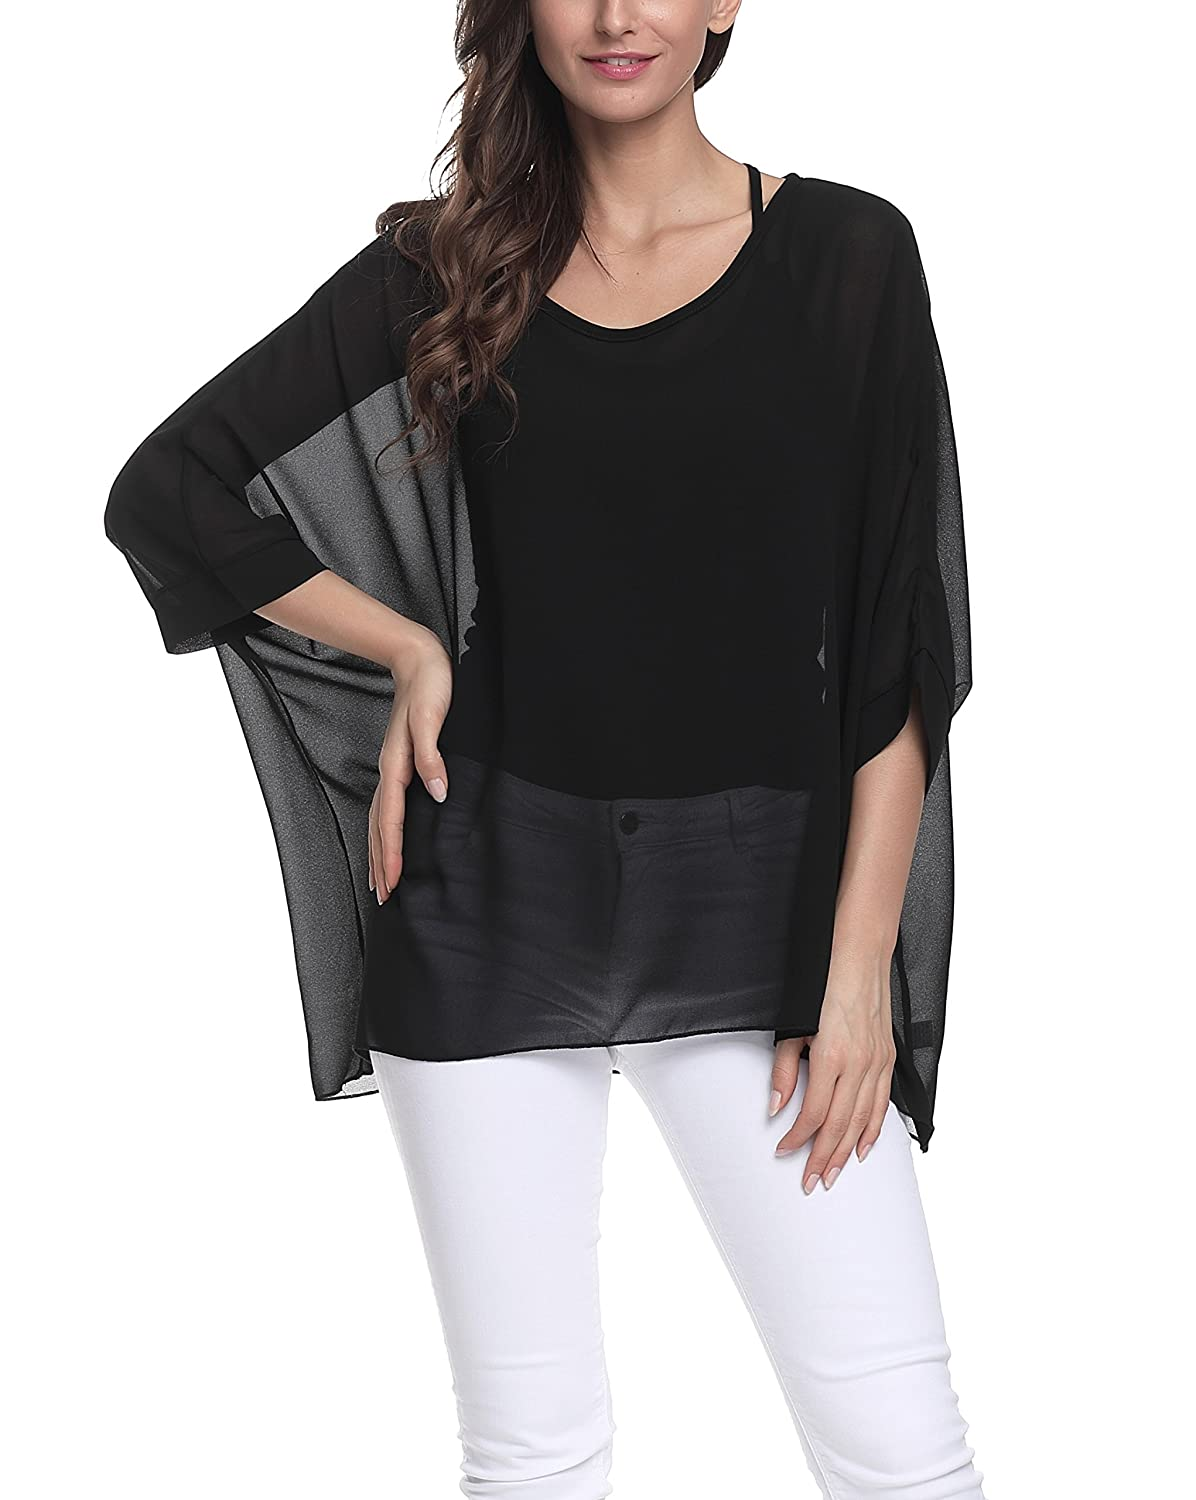 0ef361c80351f7 Chiffon 1. Lightweight sheer chiffon poncho tunic top, relaxed fitting,  loose enough for free movement 2. Easy to wash and care, just machine/hand  wash cold ...